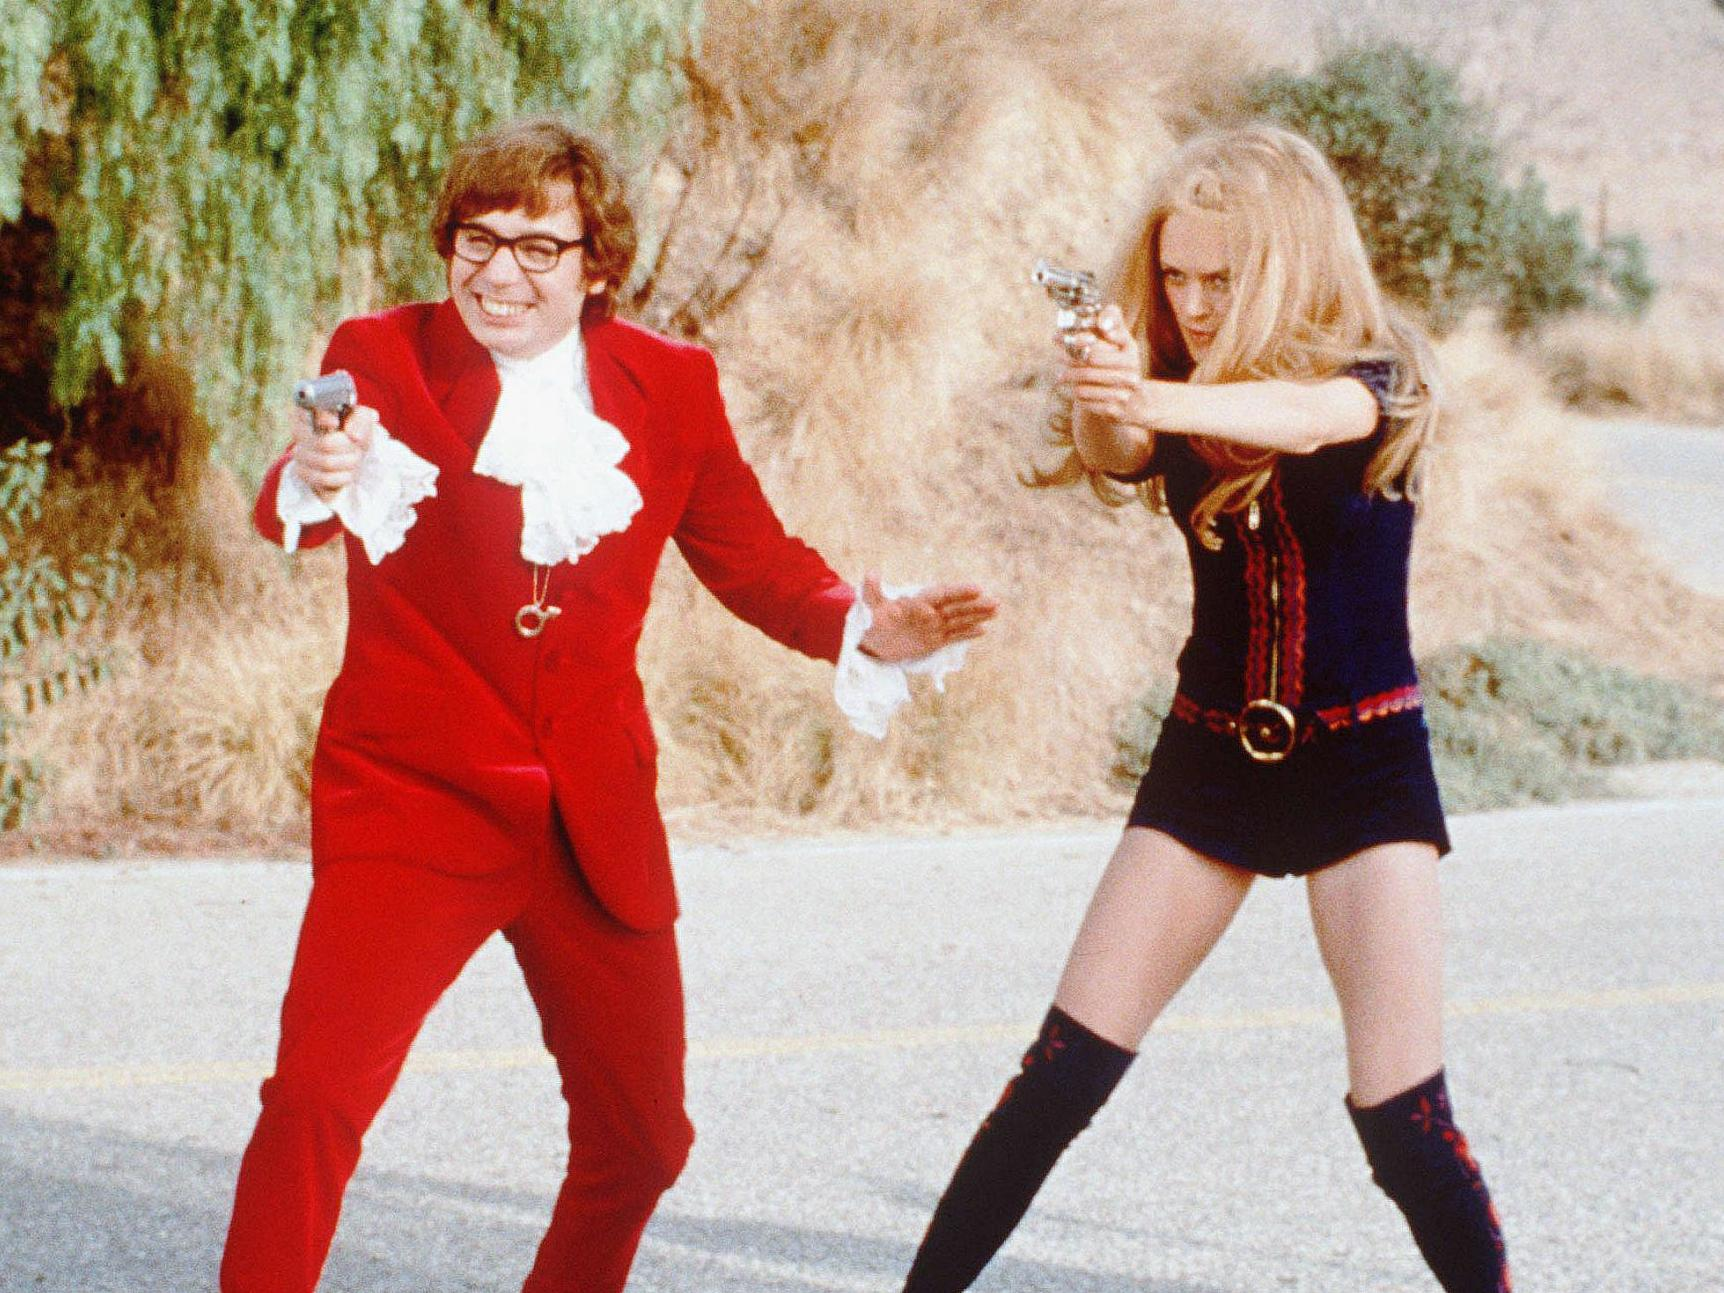 'Groovy, baby!': How Austin Powers: The Spy Who Shagged Me became the greatest comedy sequel of all time